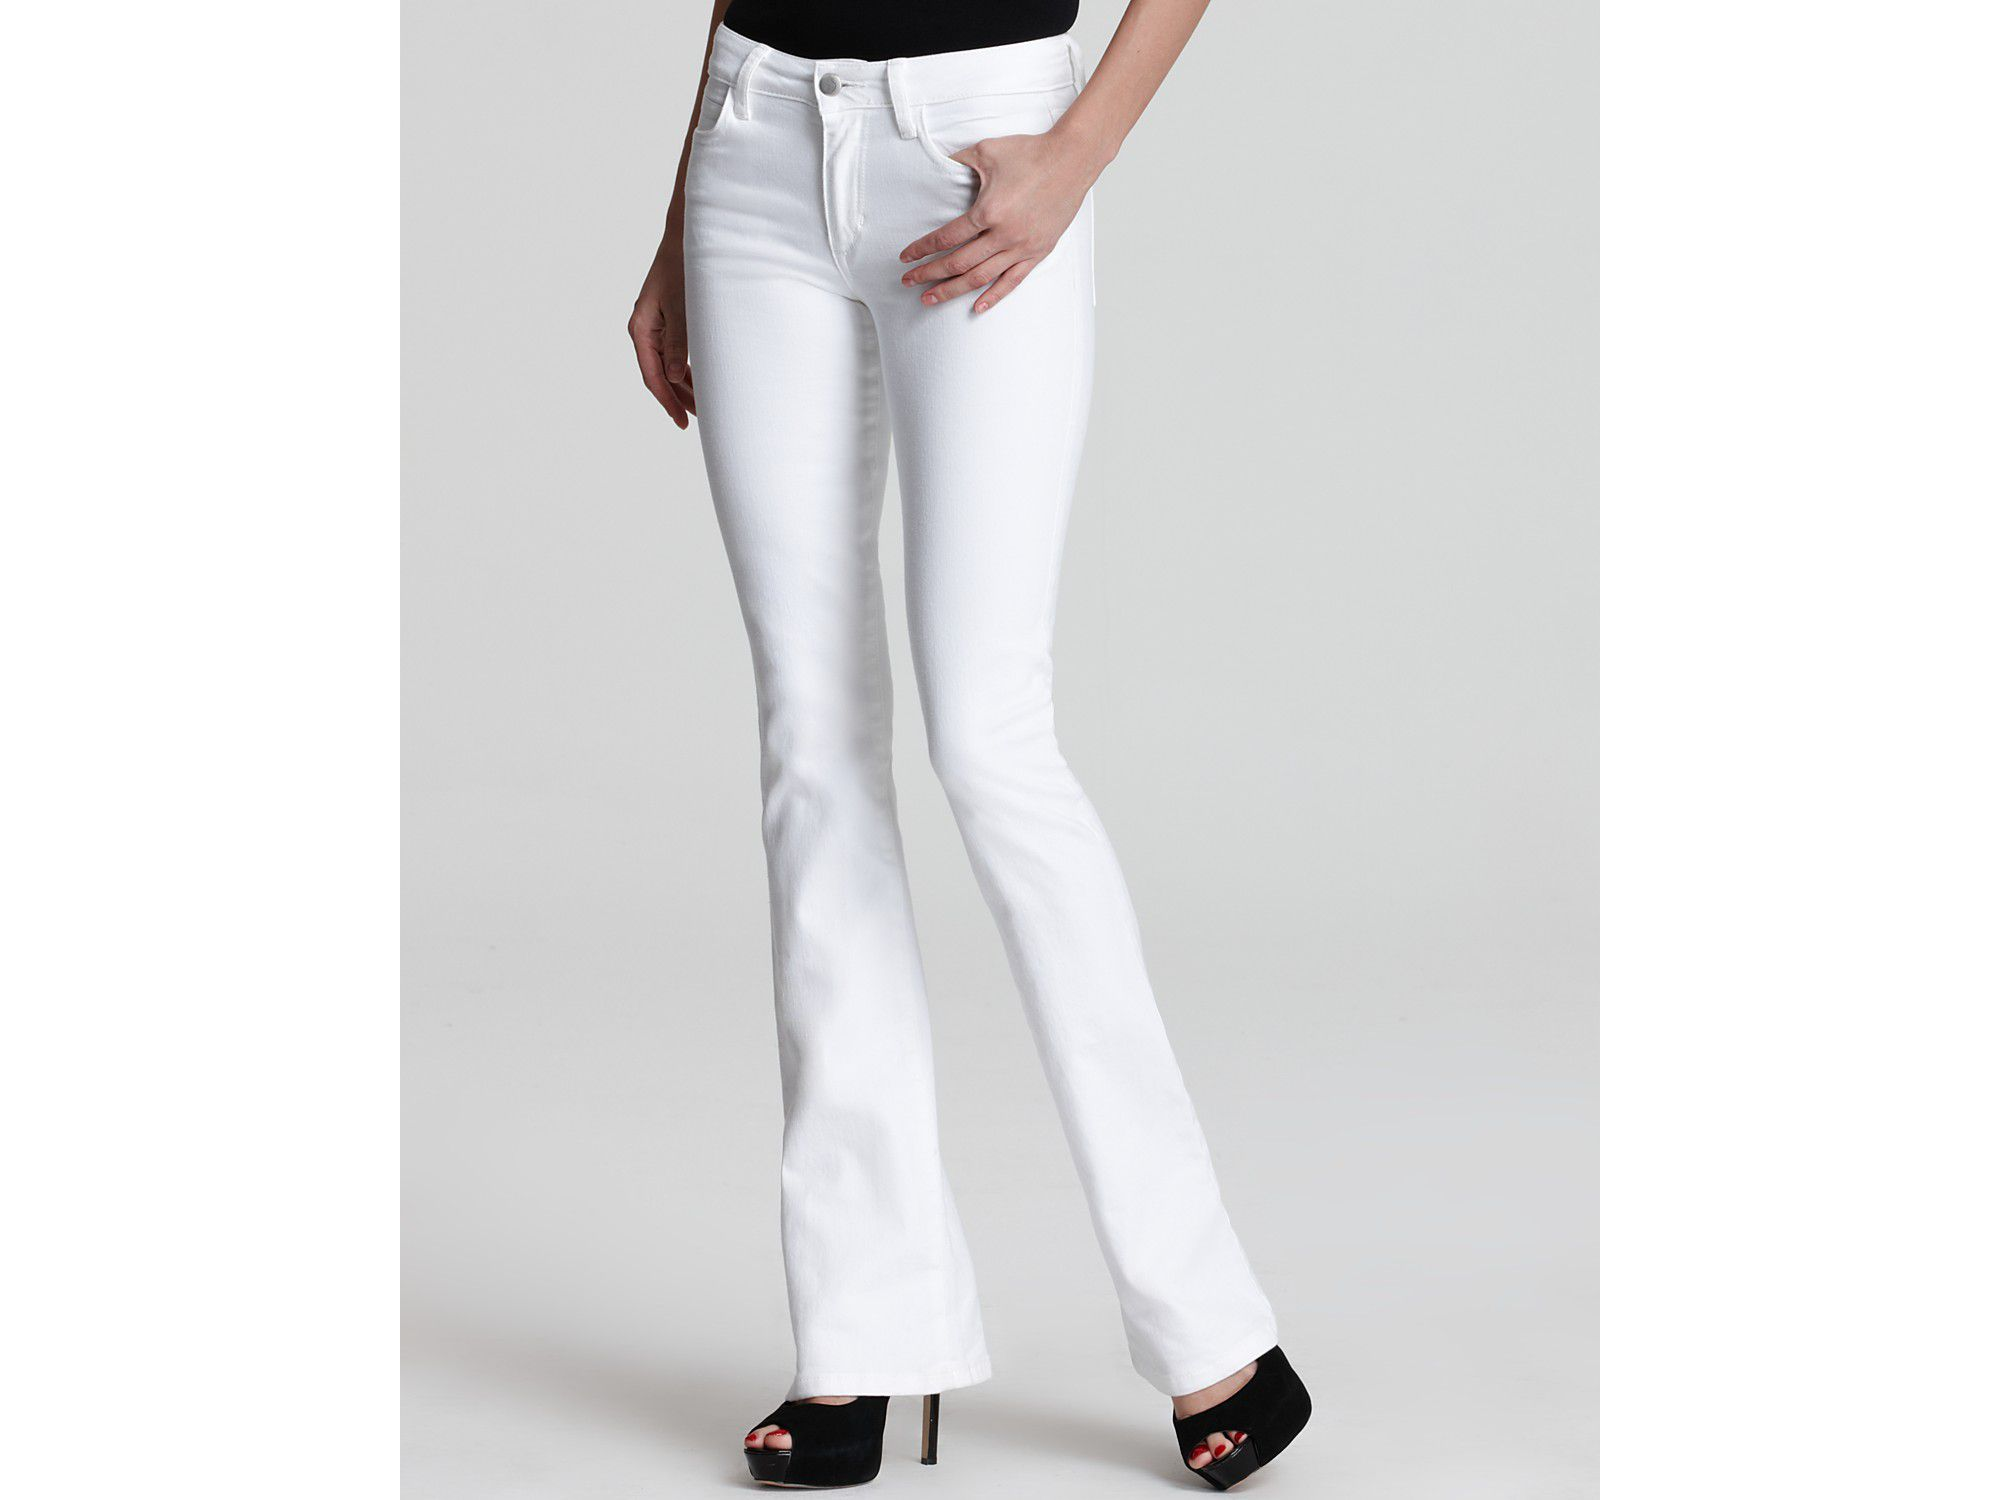 White jeans bootcut style petite fit